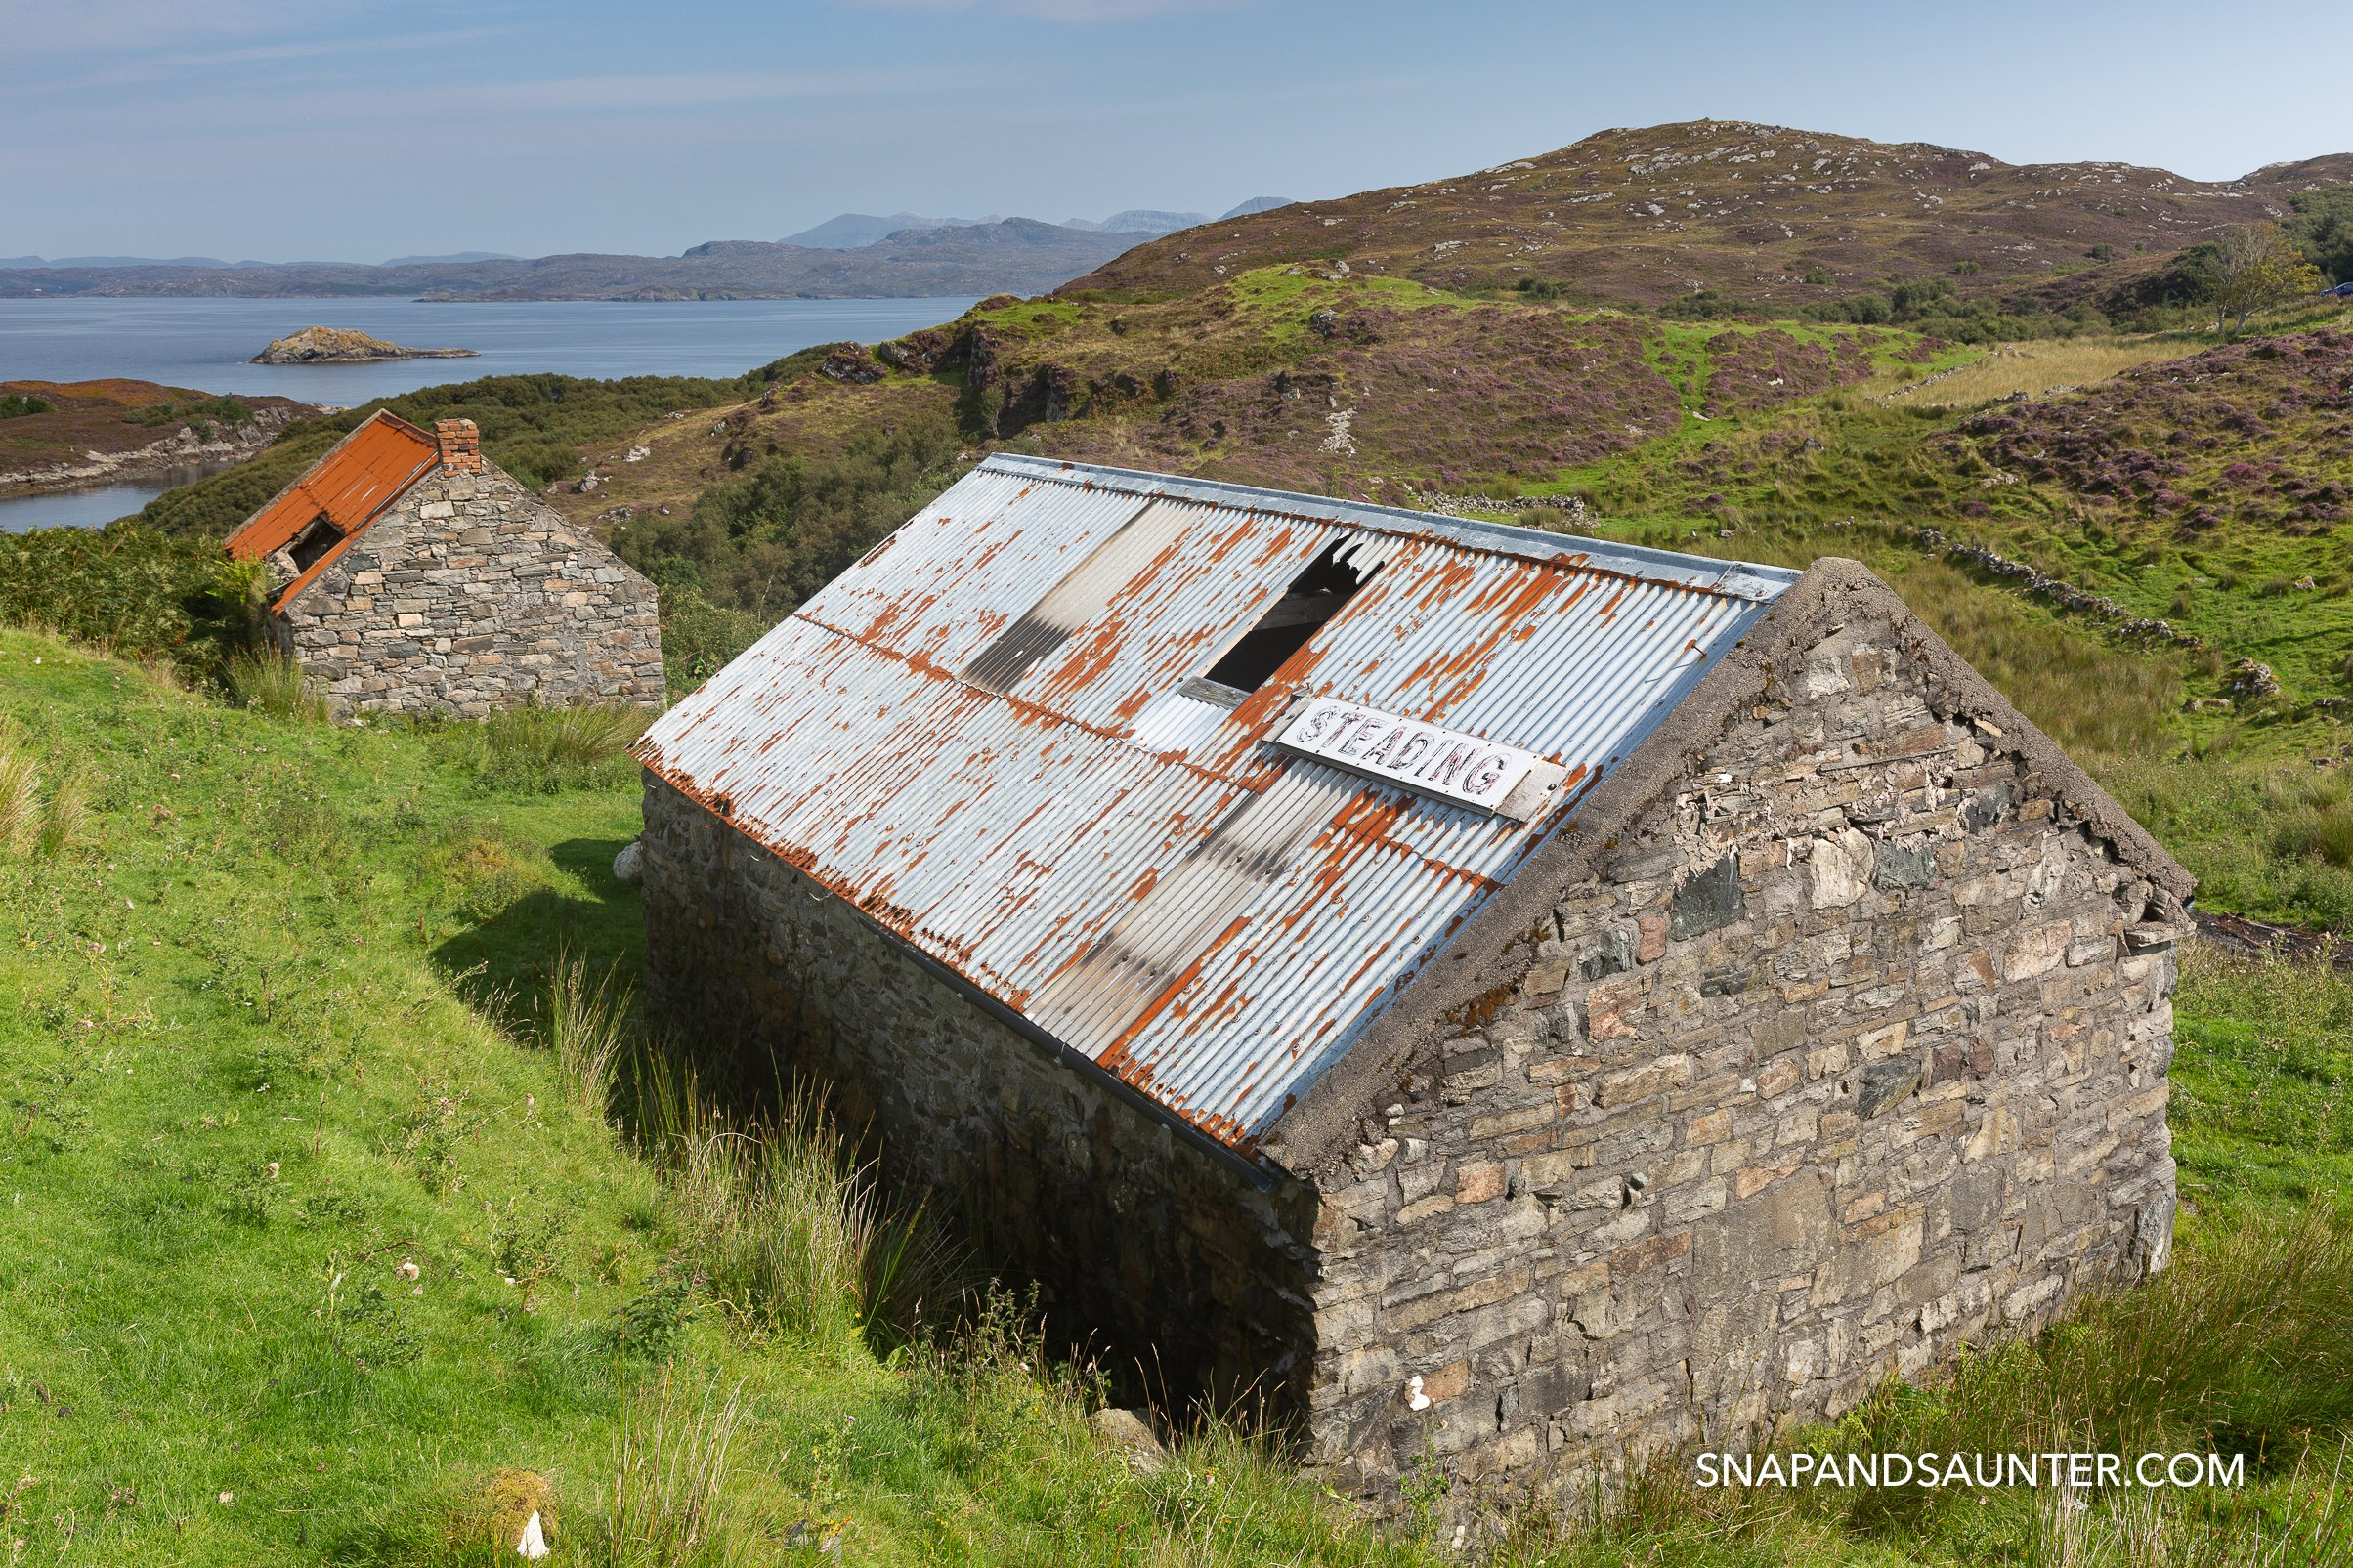 Two barns next to the Drumbeg Viewpoint on route North Coast 500 in the Scottish Highlands